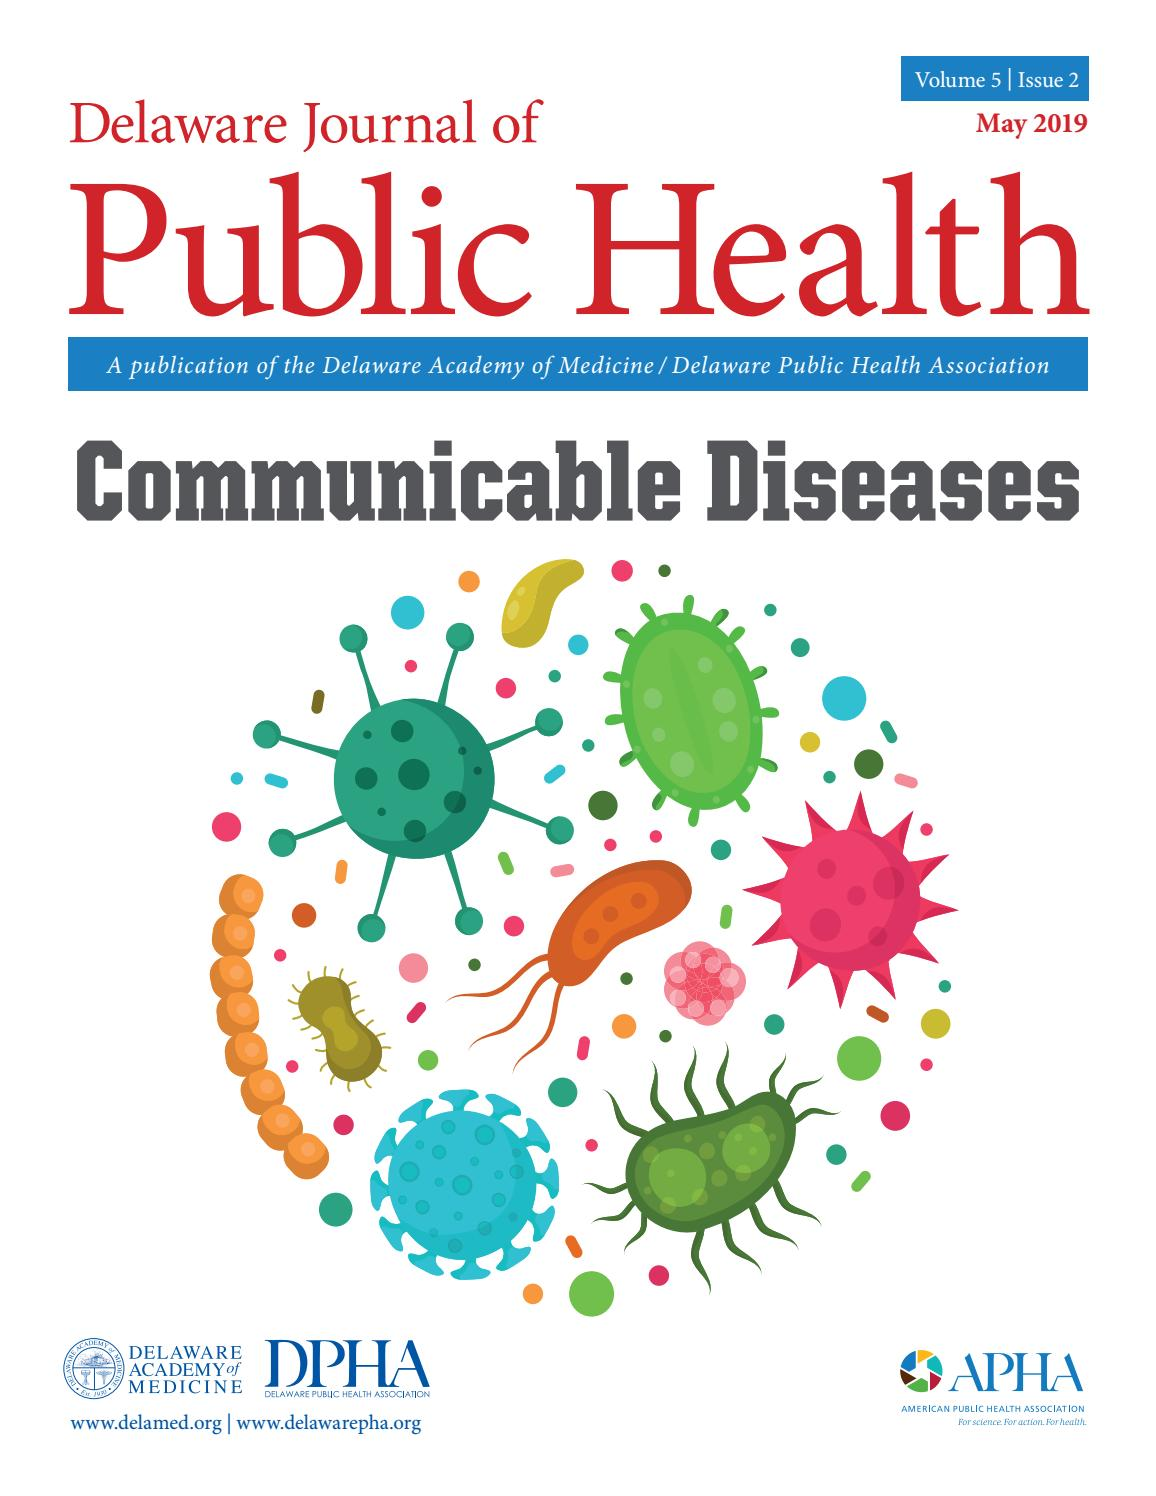 Delaware Journal of Public Health - Communicable Disease by Delaware